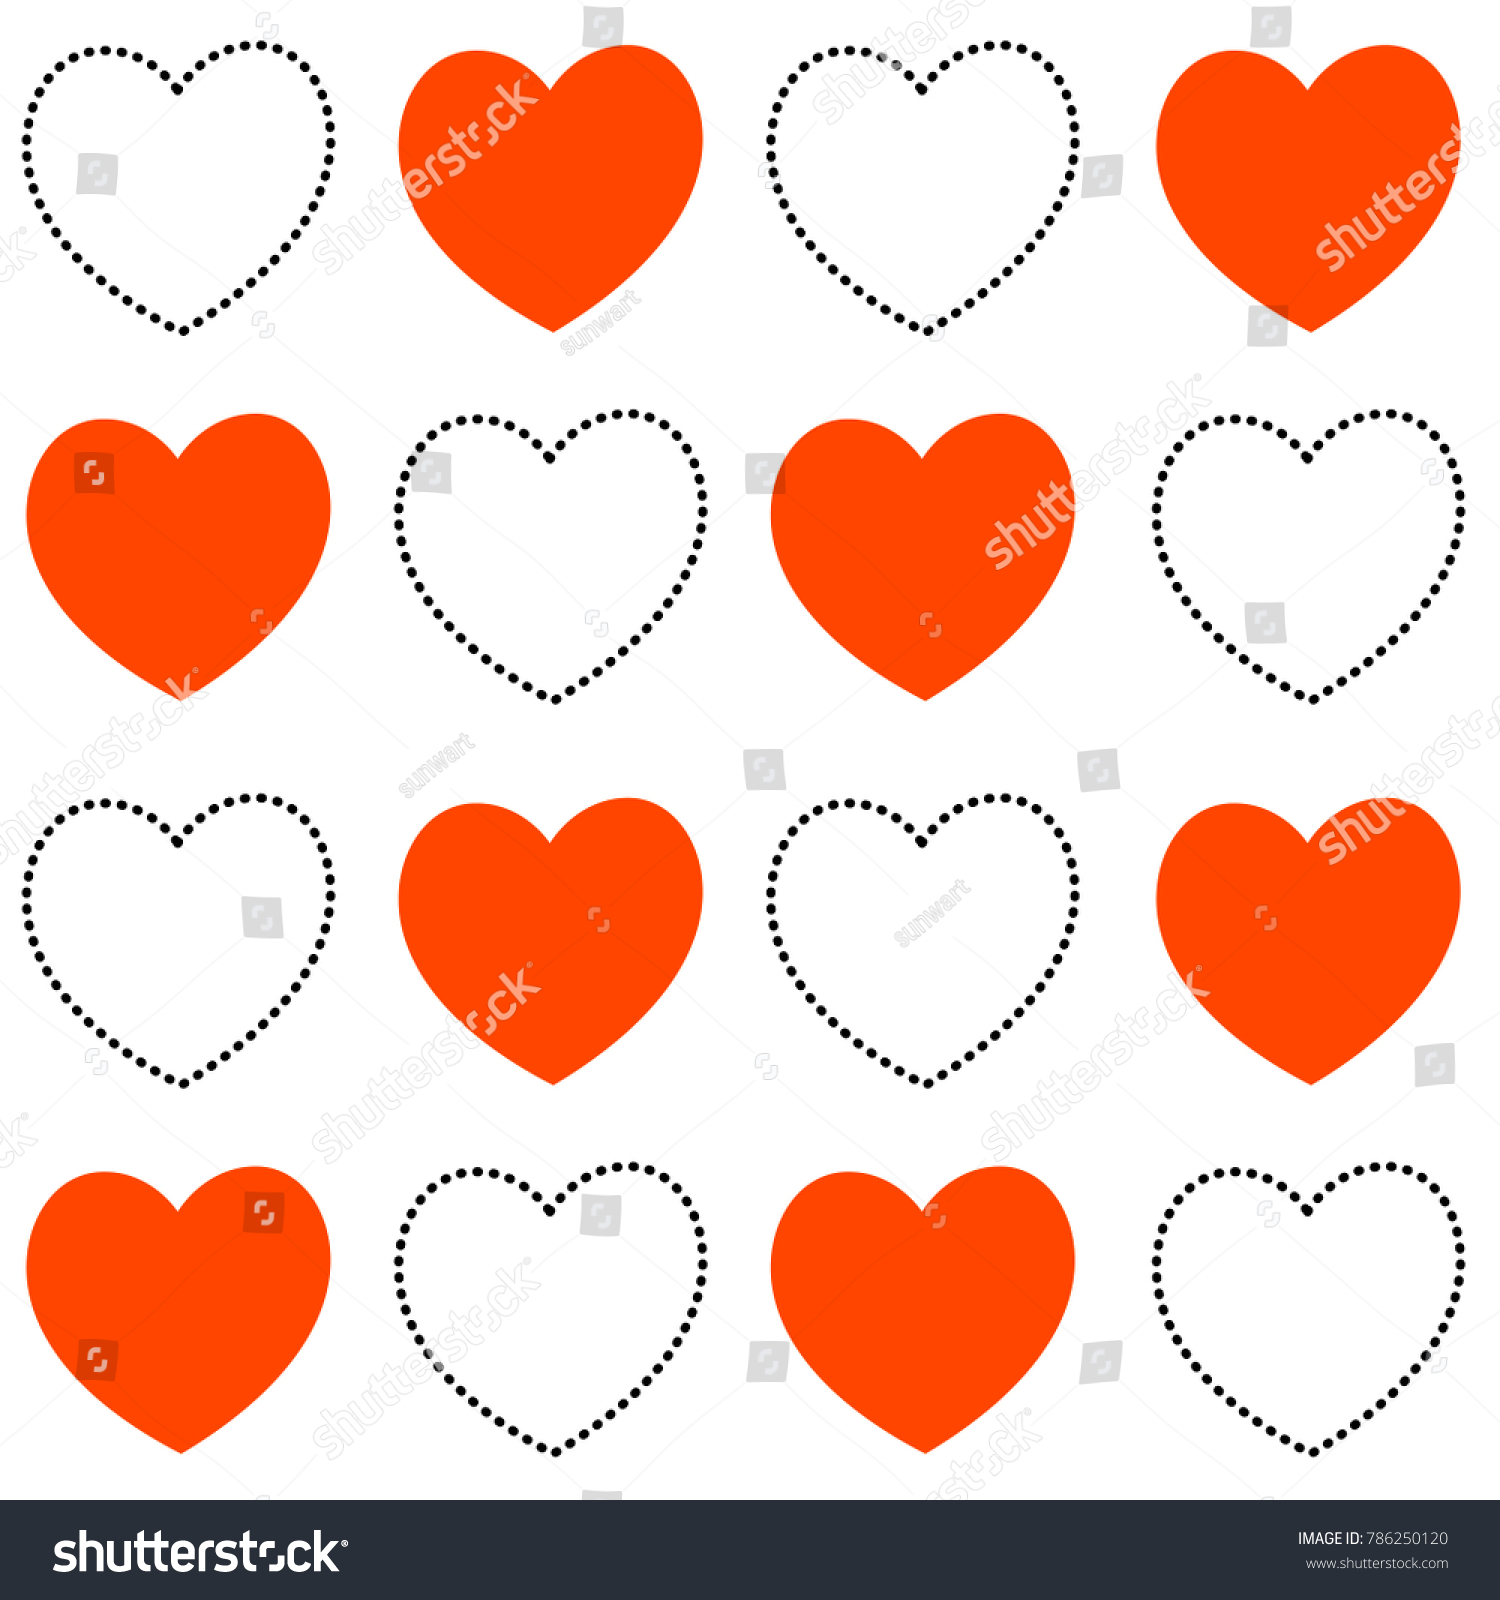 Vector seamless heart pattern love symbol stock vector 786250120 vector seamless heart pattern love symbol graphic background red and black doted line hearts buycottarizona Images